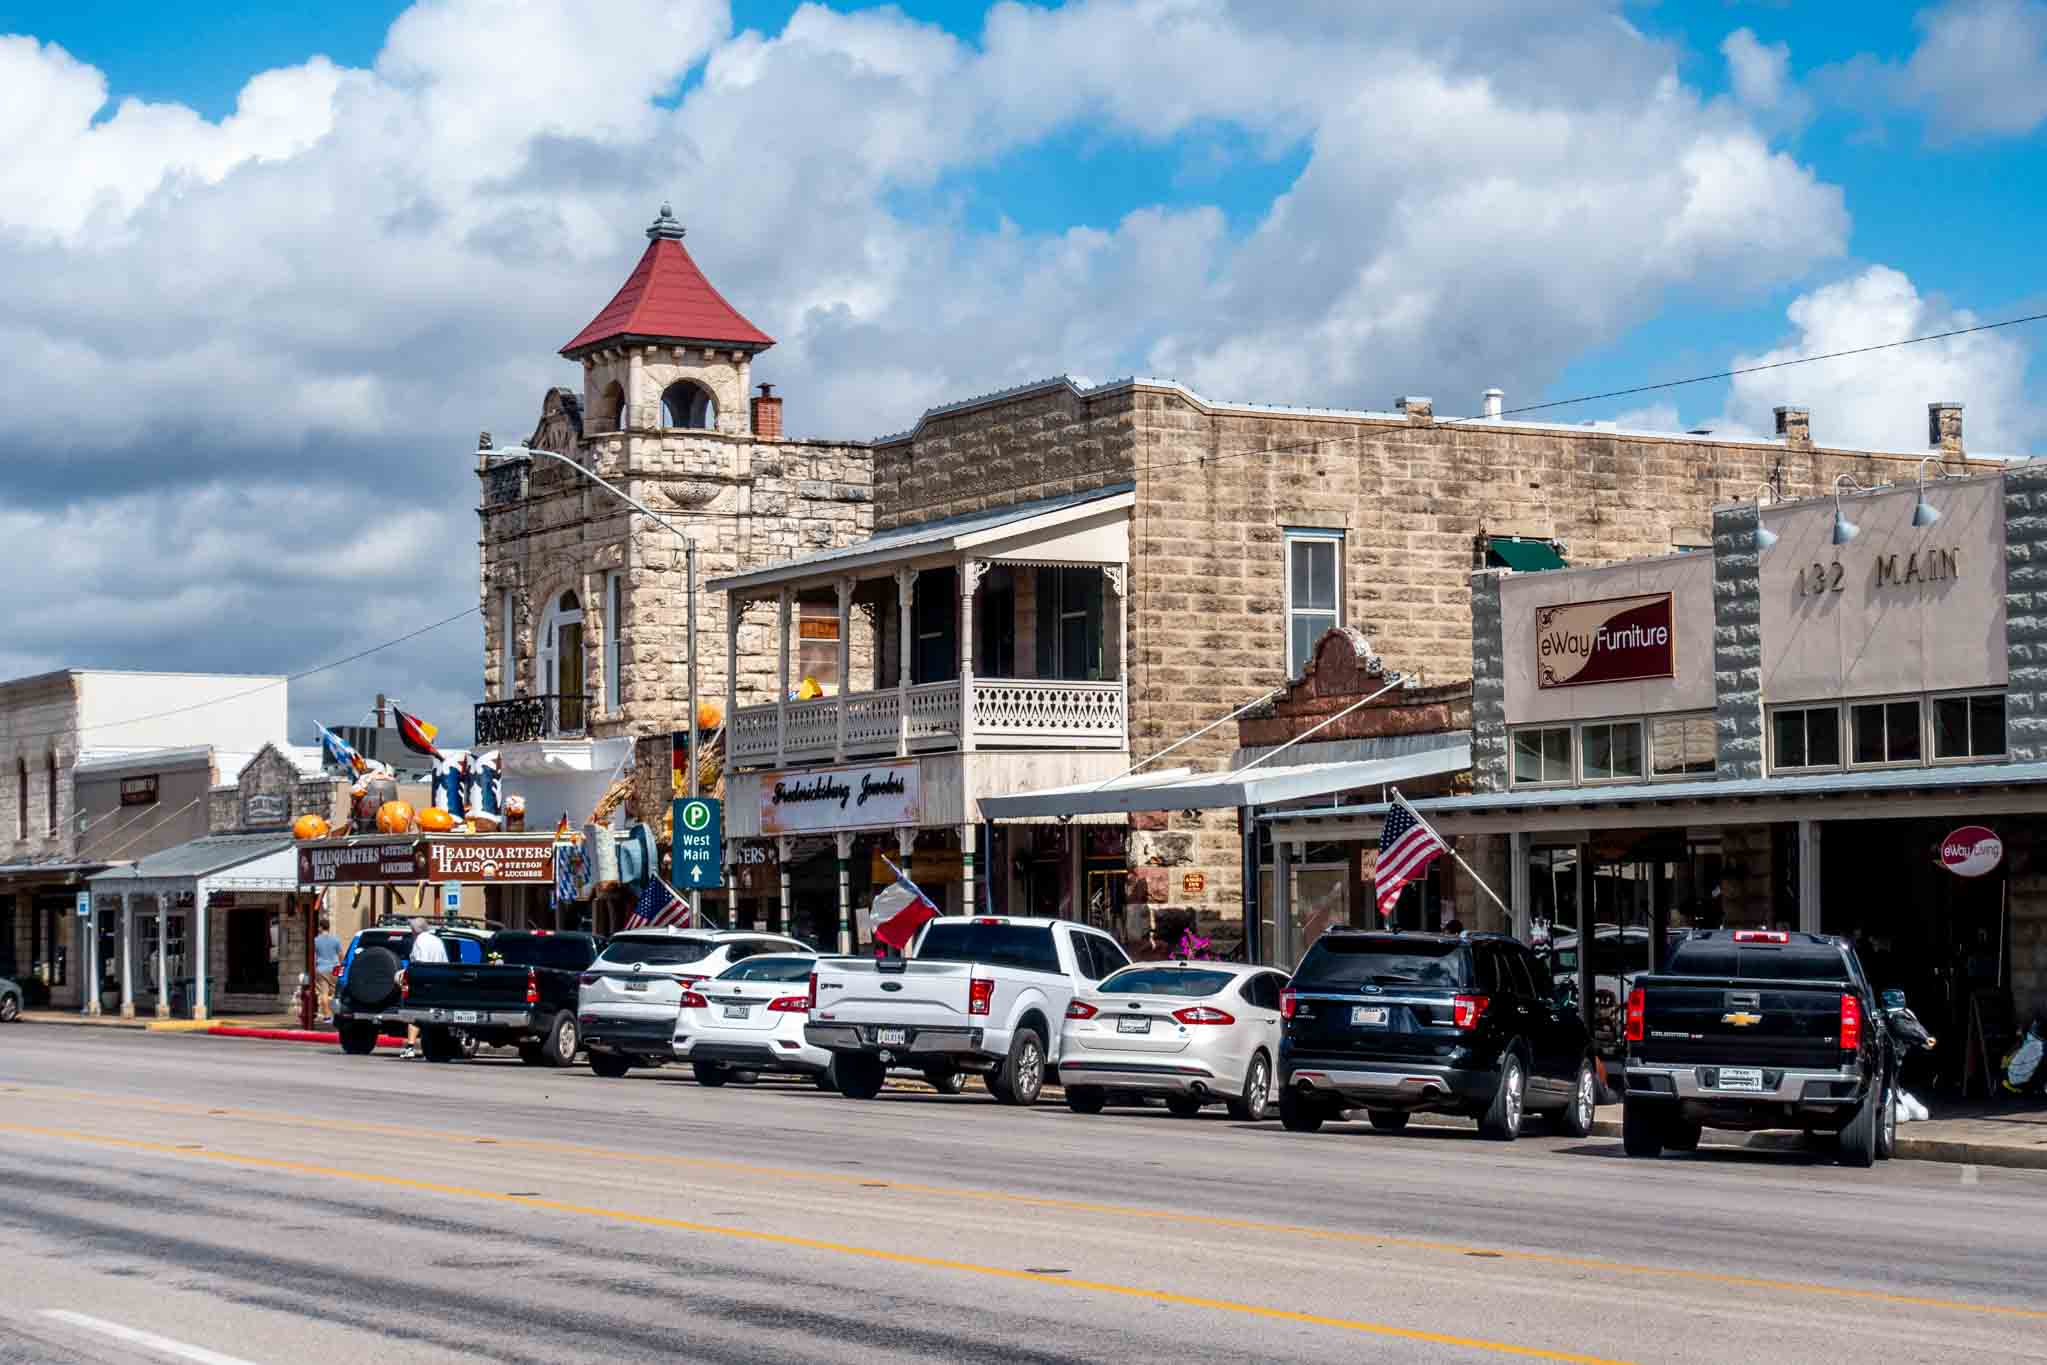 Buildings and cars on Main Street in Fredericksburg TX